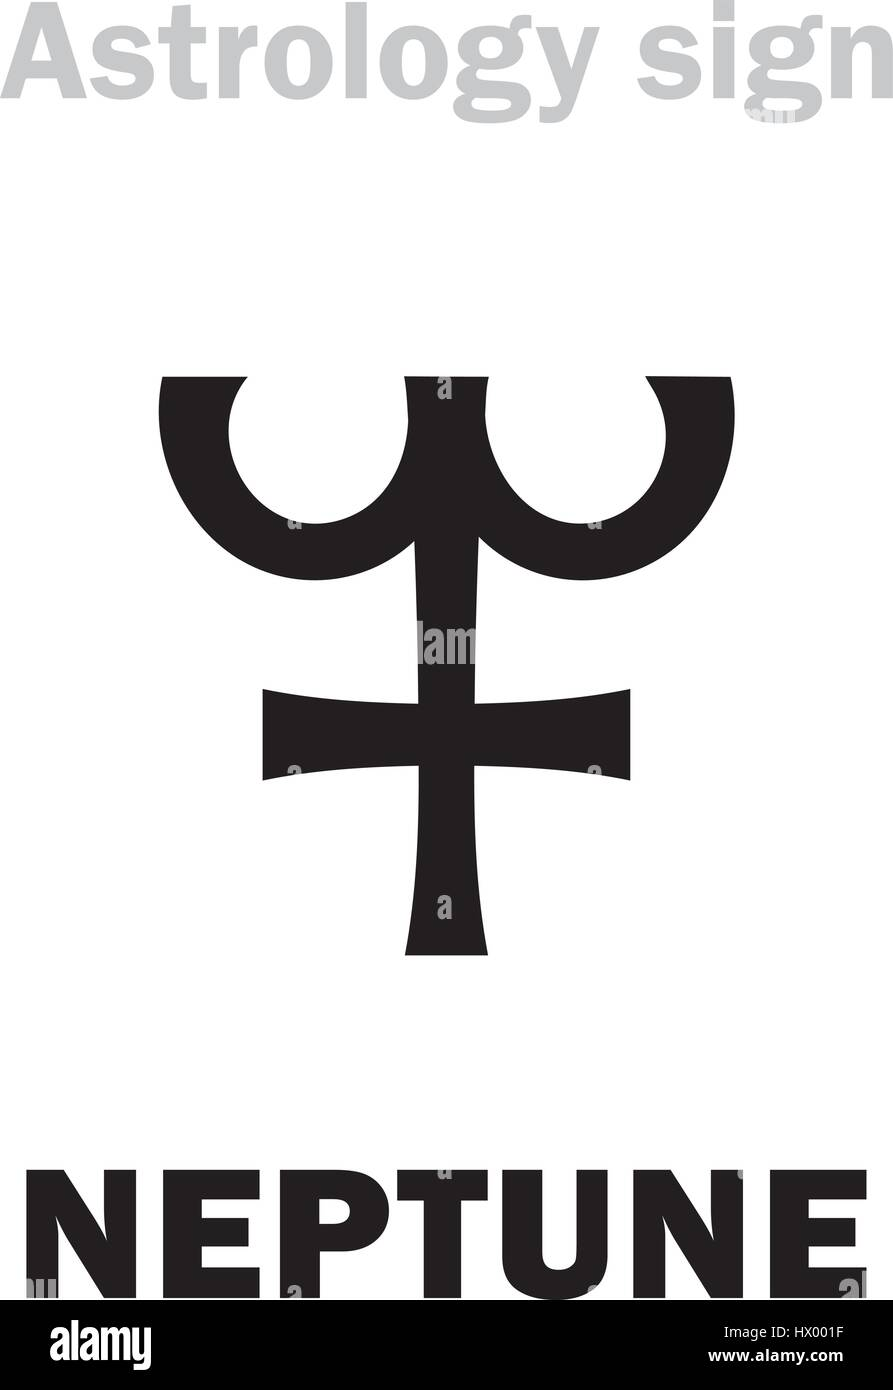 Astrology alphabet neptune planet hieroglyphics character sign astrology alphabet neptune planet hieroglyphics character sign single symbol biocorpaavc Image collections